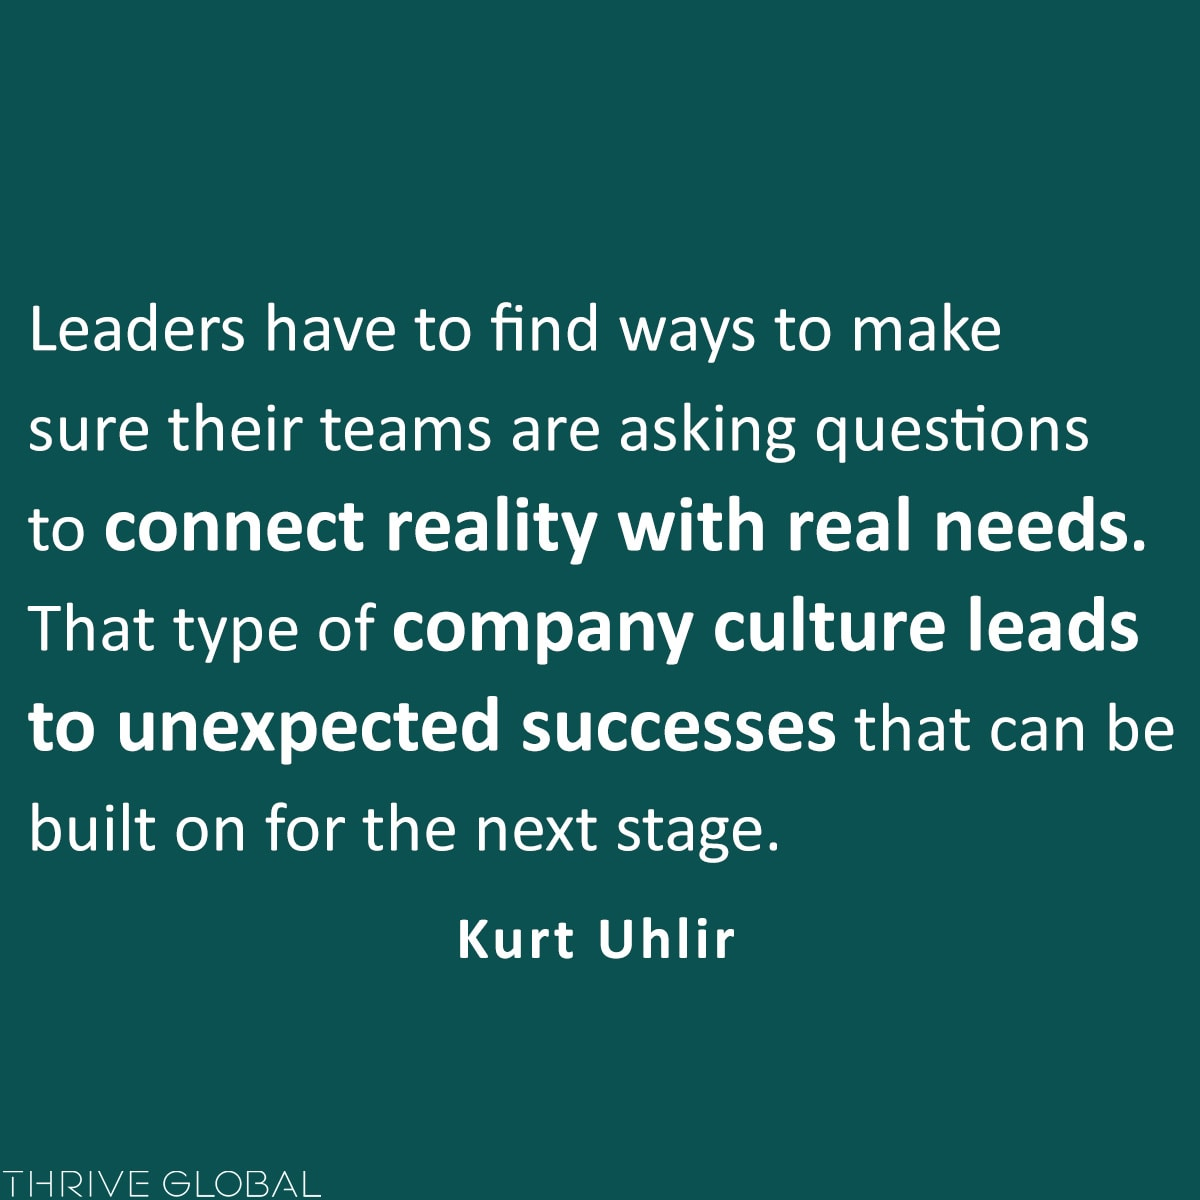 type of company culture leads to unexpected successes that can be built on for the next stage